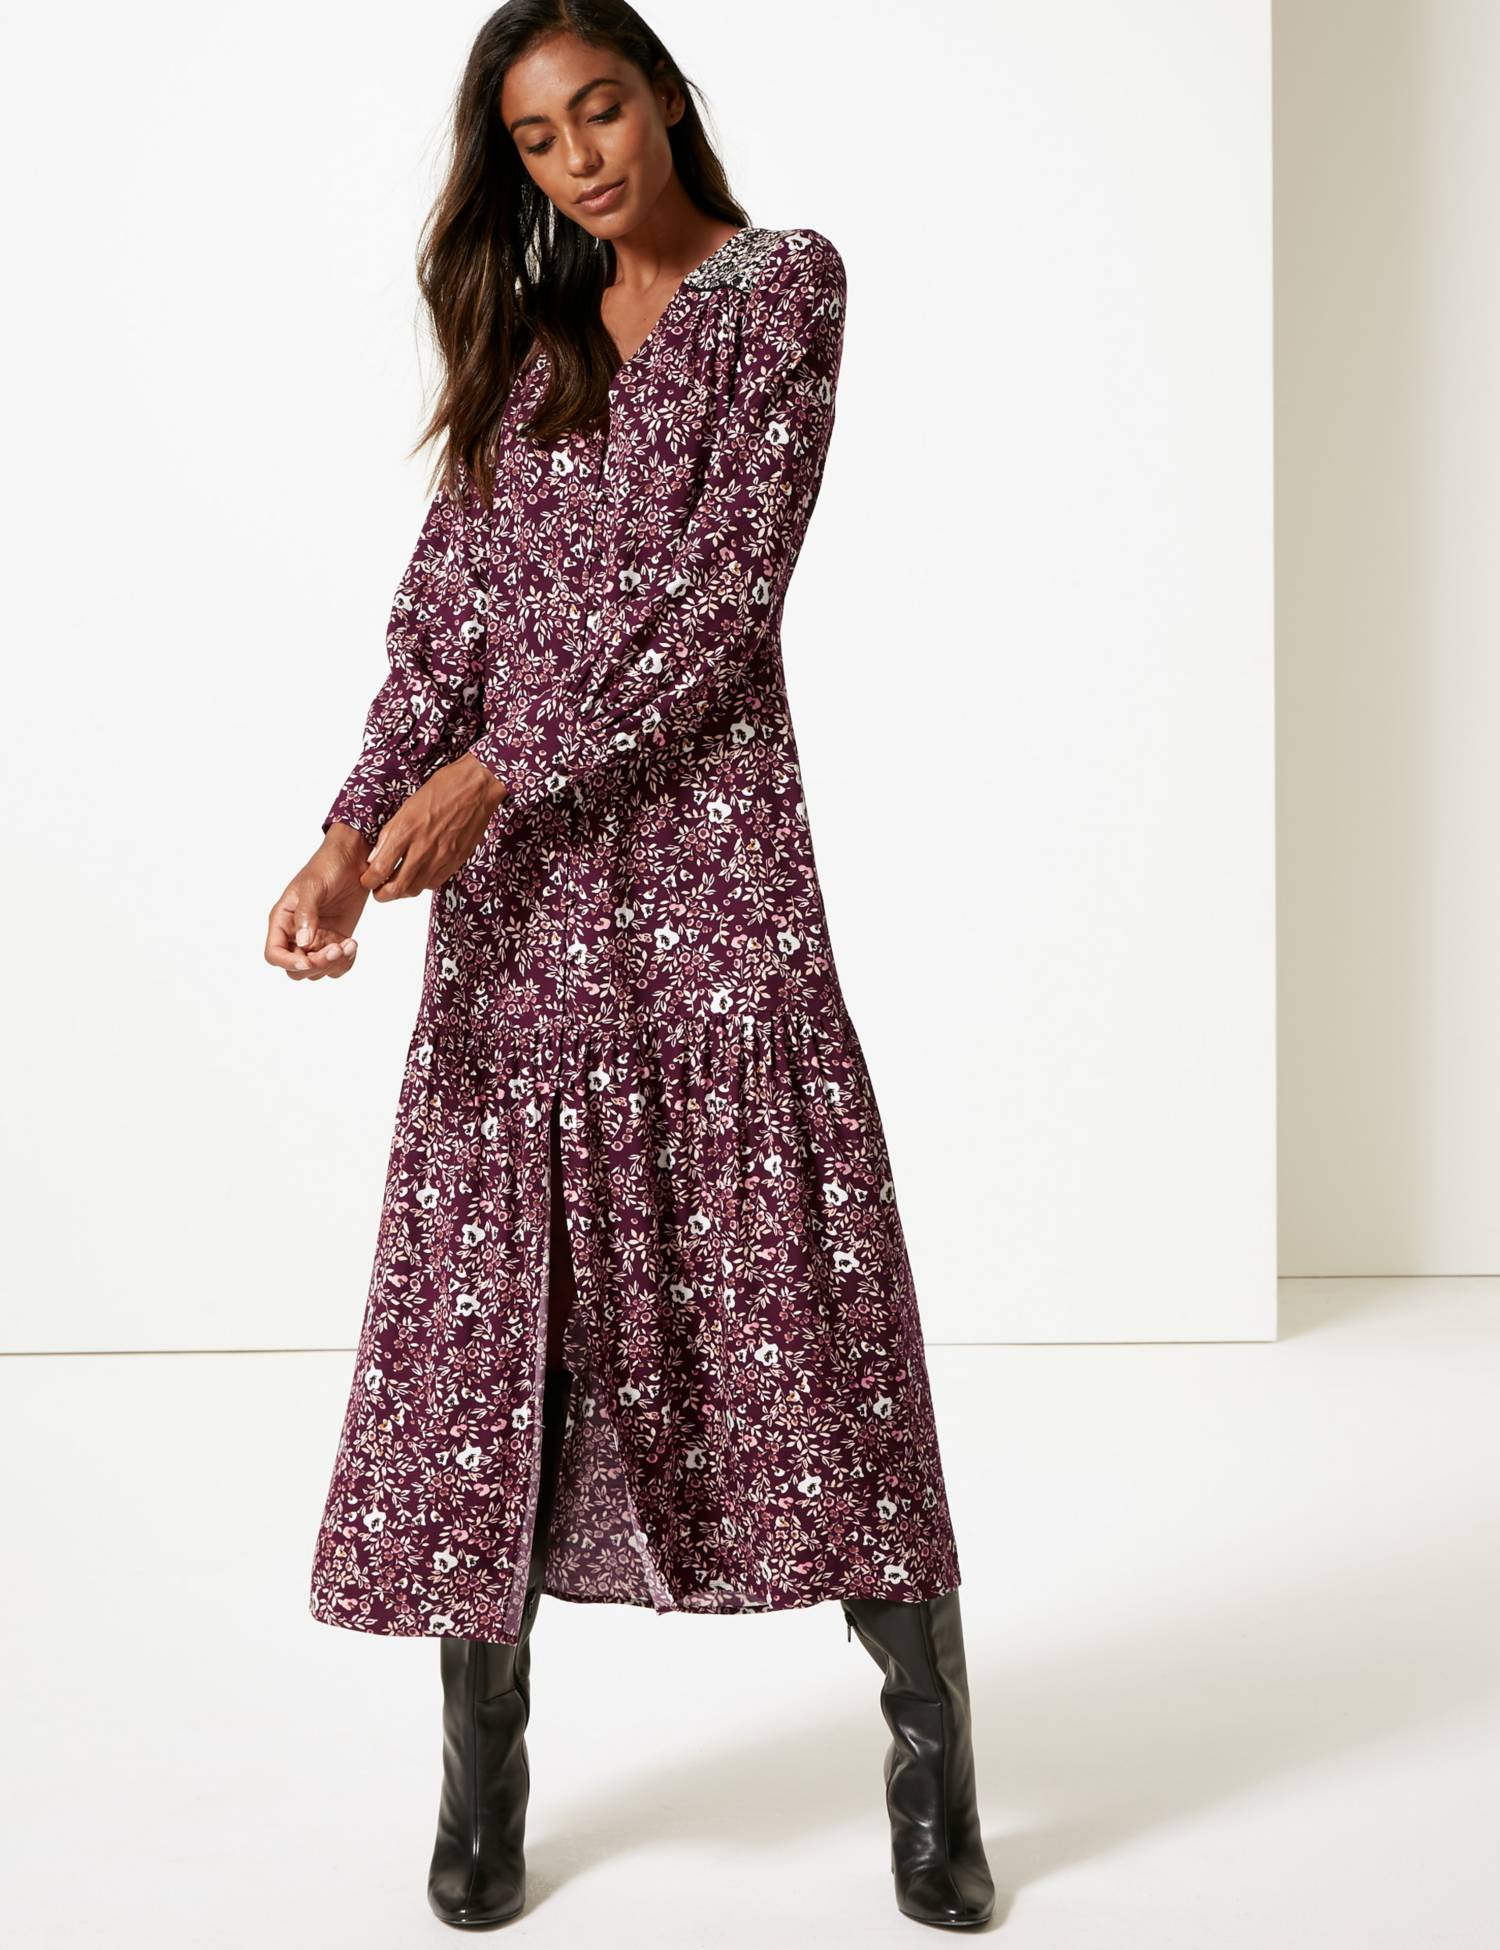 You can buy this dress by M&S    here   .